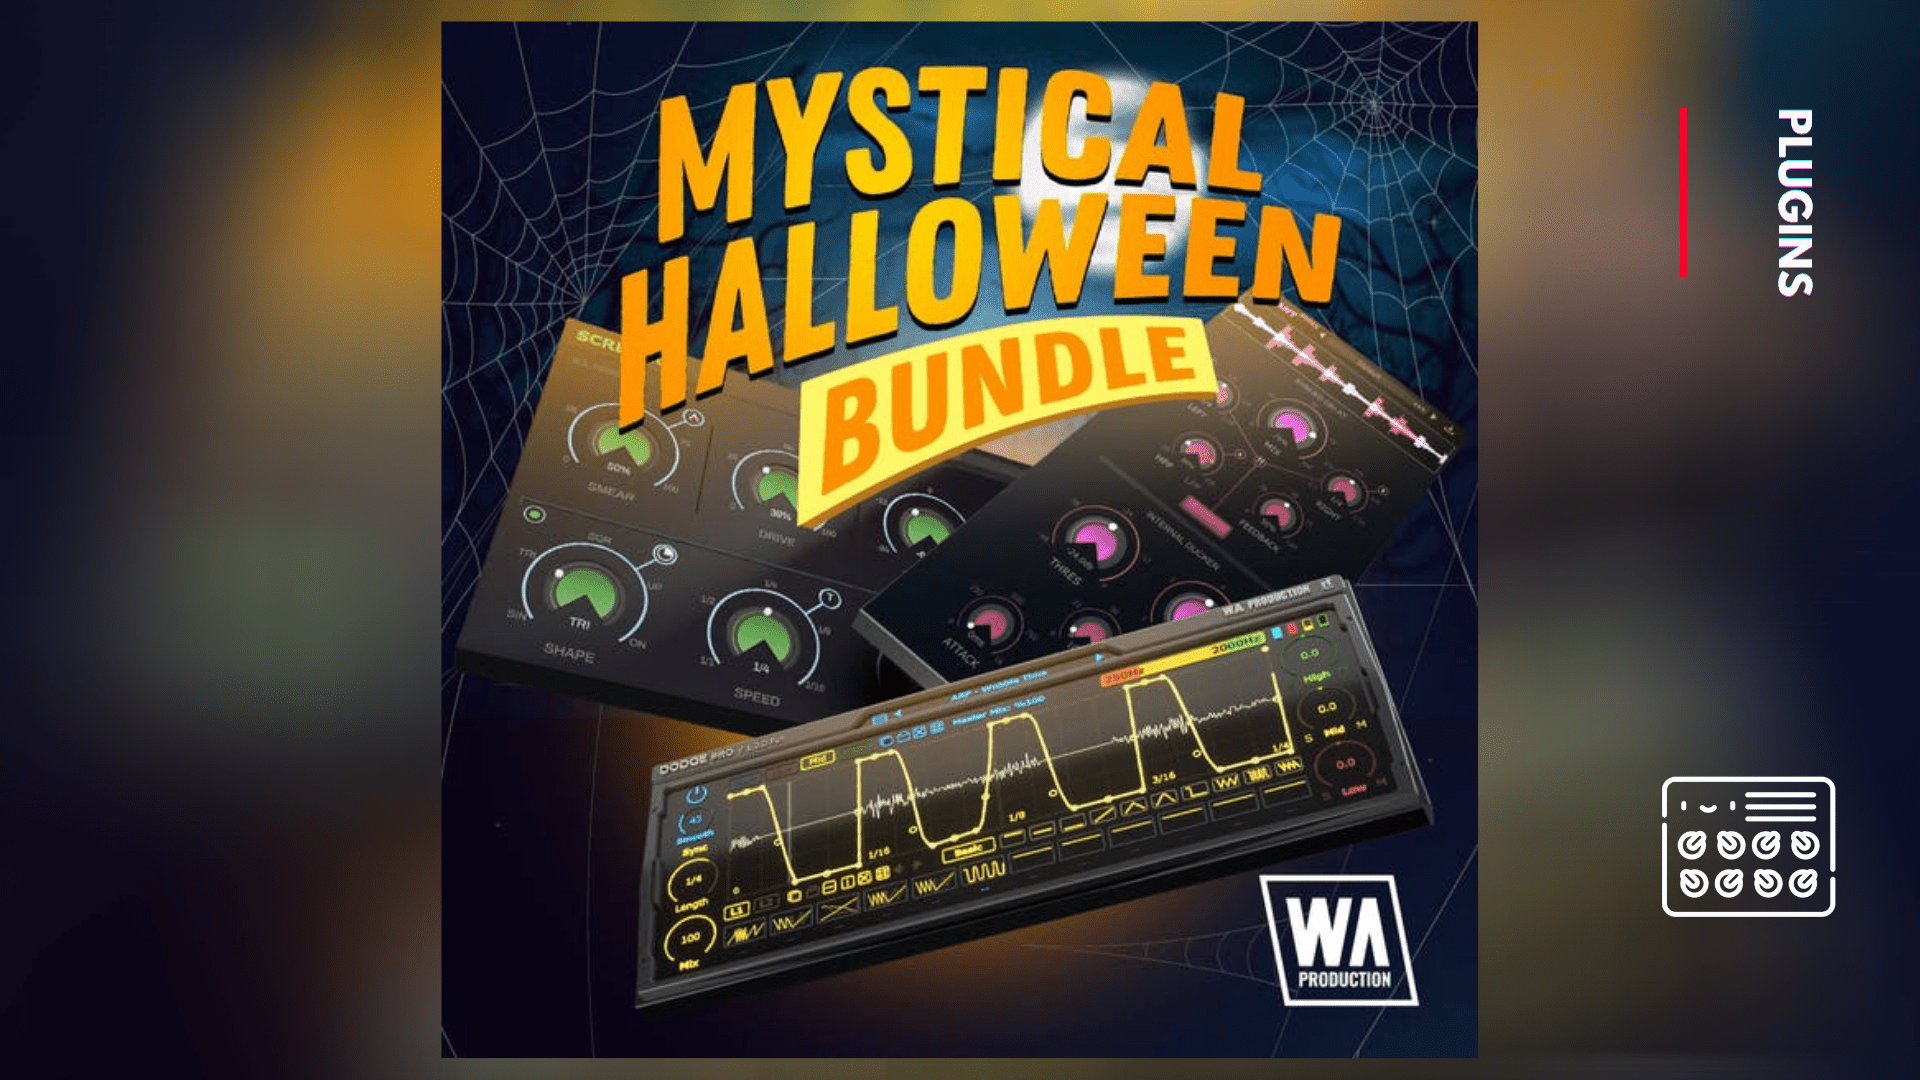 Halloween 2020 Best Deals on VST Plugins for Music Production